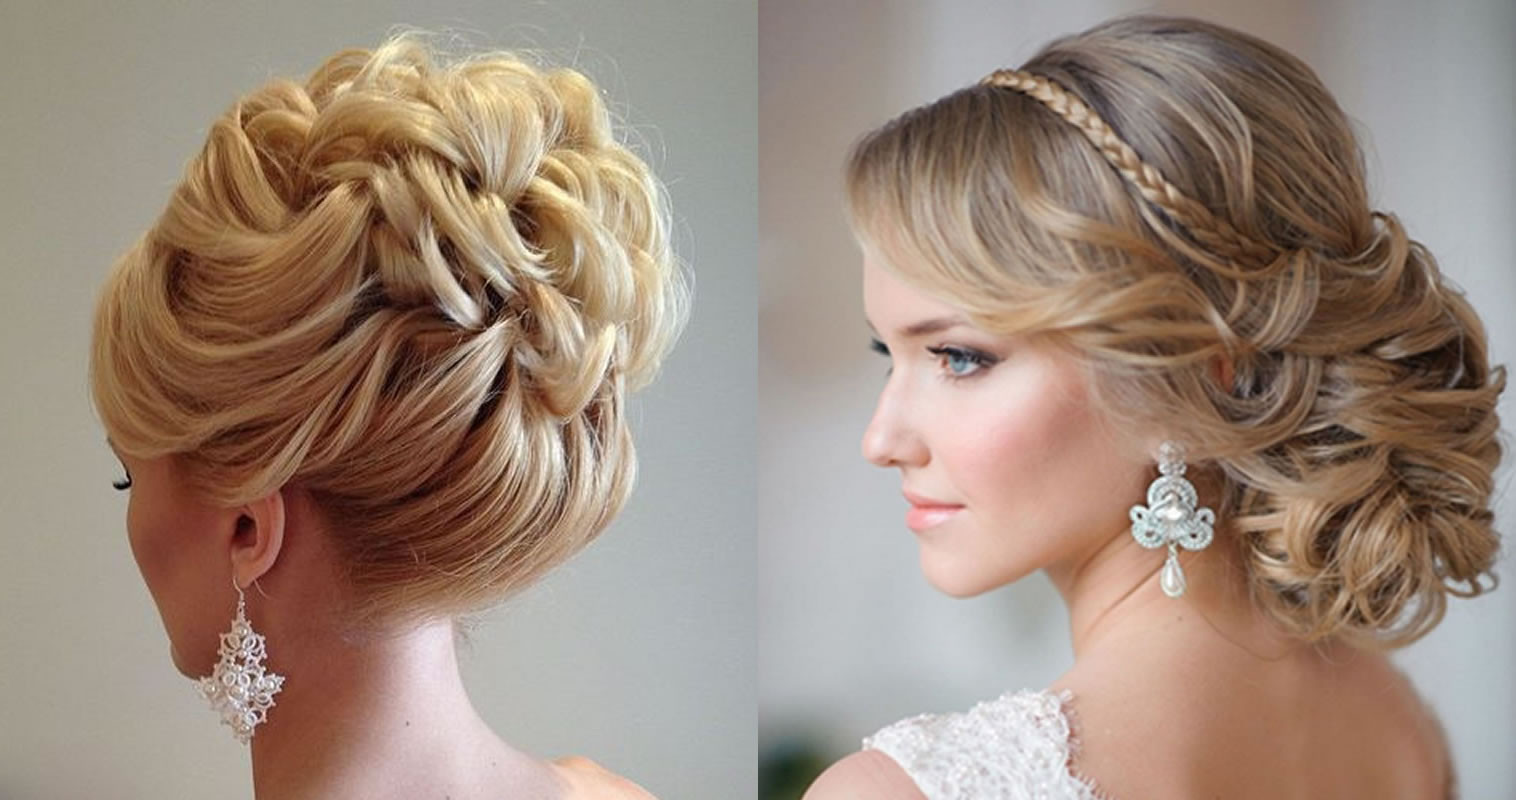 Hairstyles For Bridesmaids 2019  Updo Wedding Hairstyles 2019 Hair Color Ideas for Bride